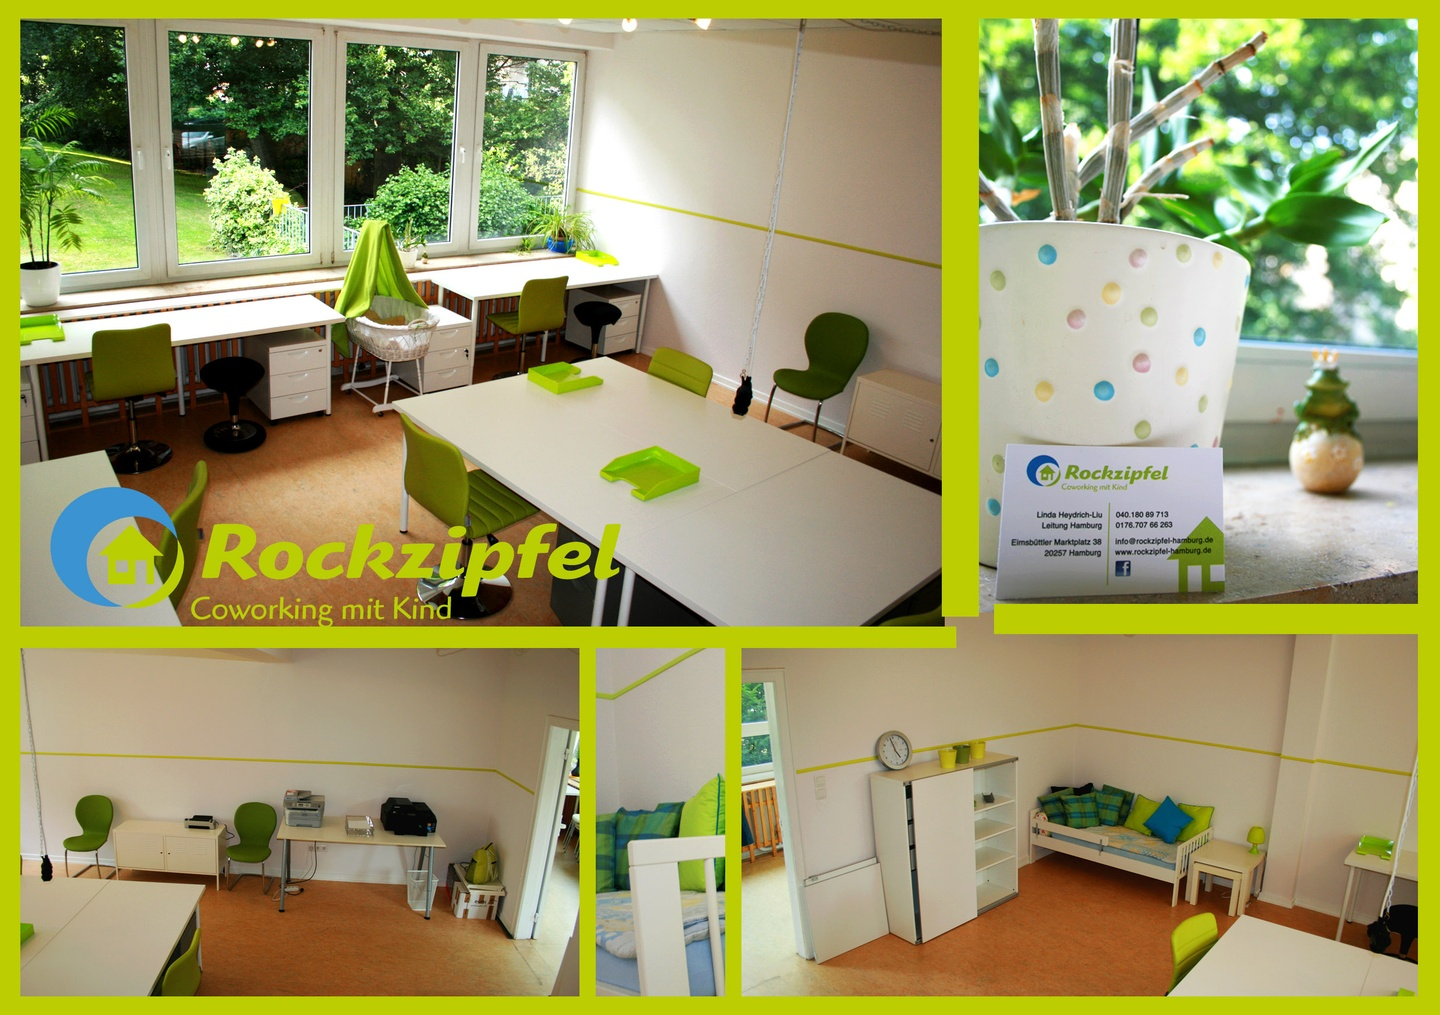 Hamburg training rooms Espace de Coworking Rockzipfel - Coworking with Kids @ Hub3 image 2